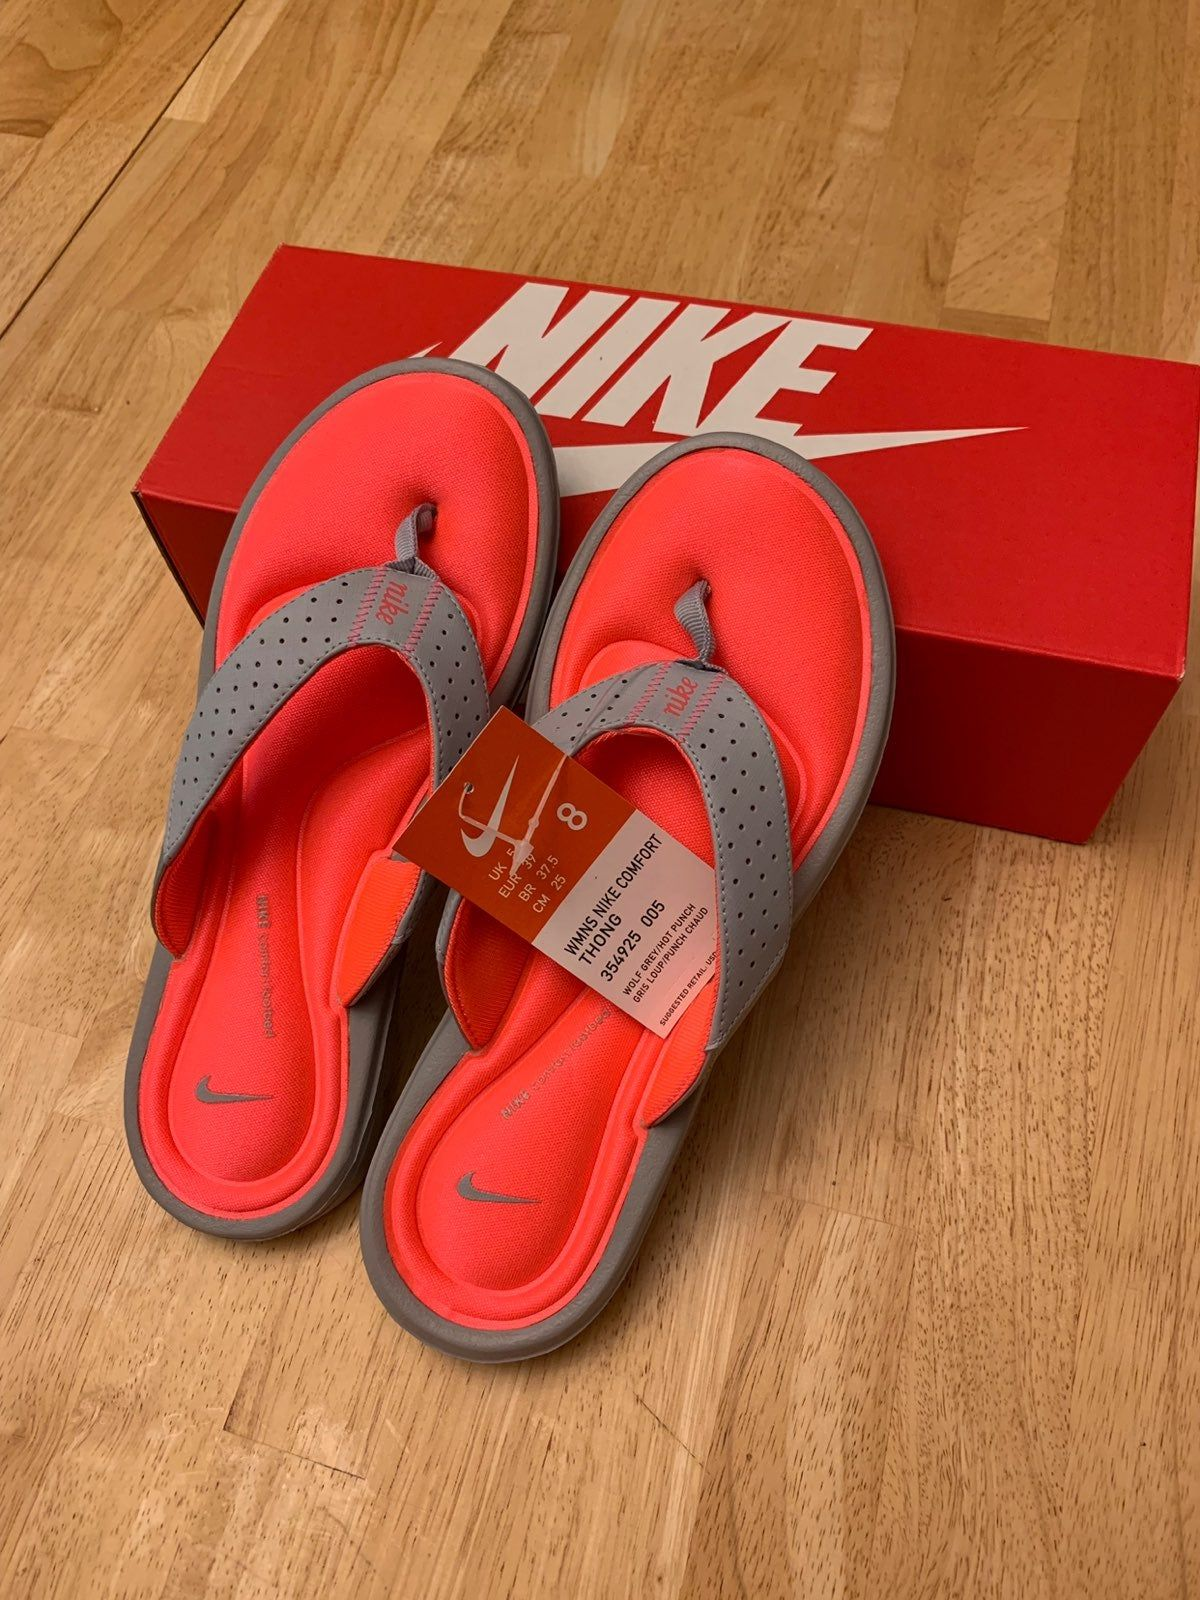 Brand New Woman S Nike Flip Flops With The Box And Tags Still On